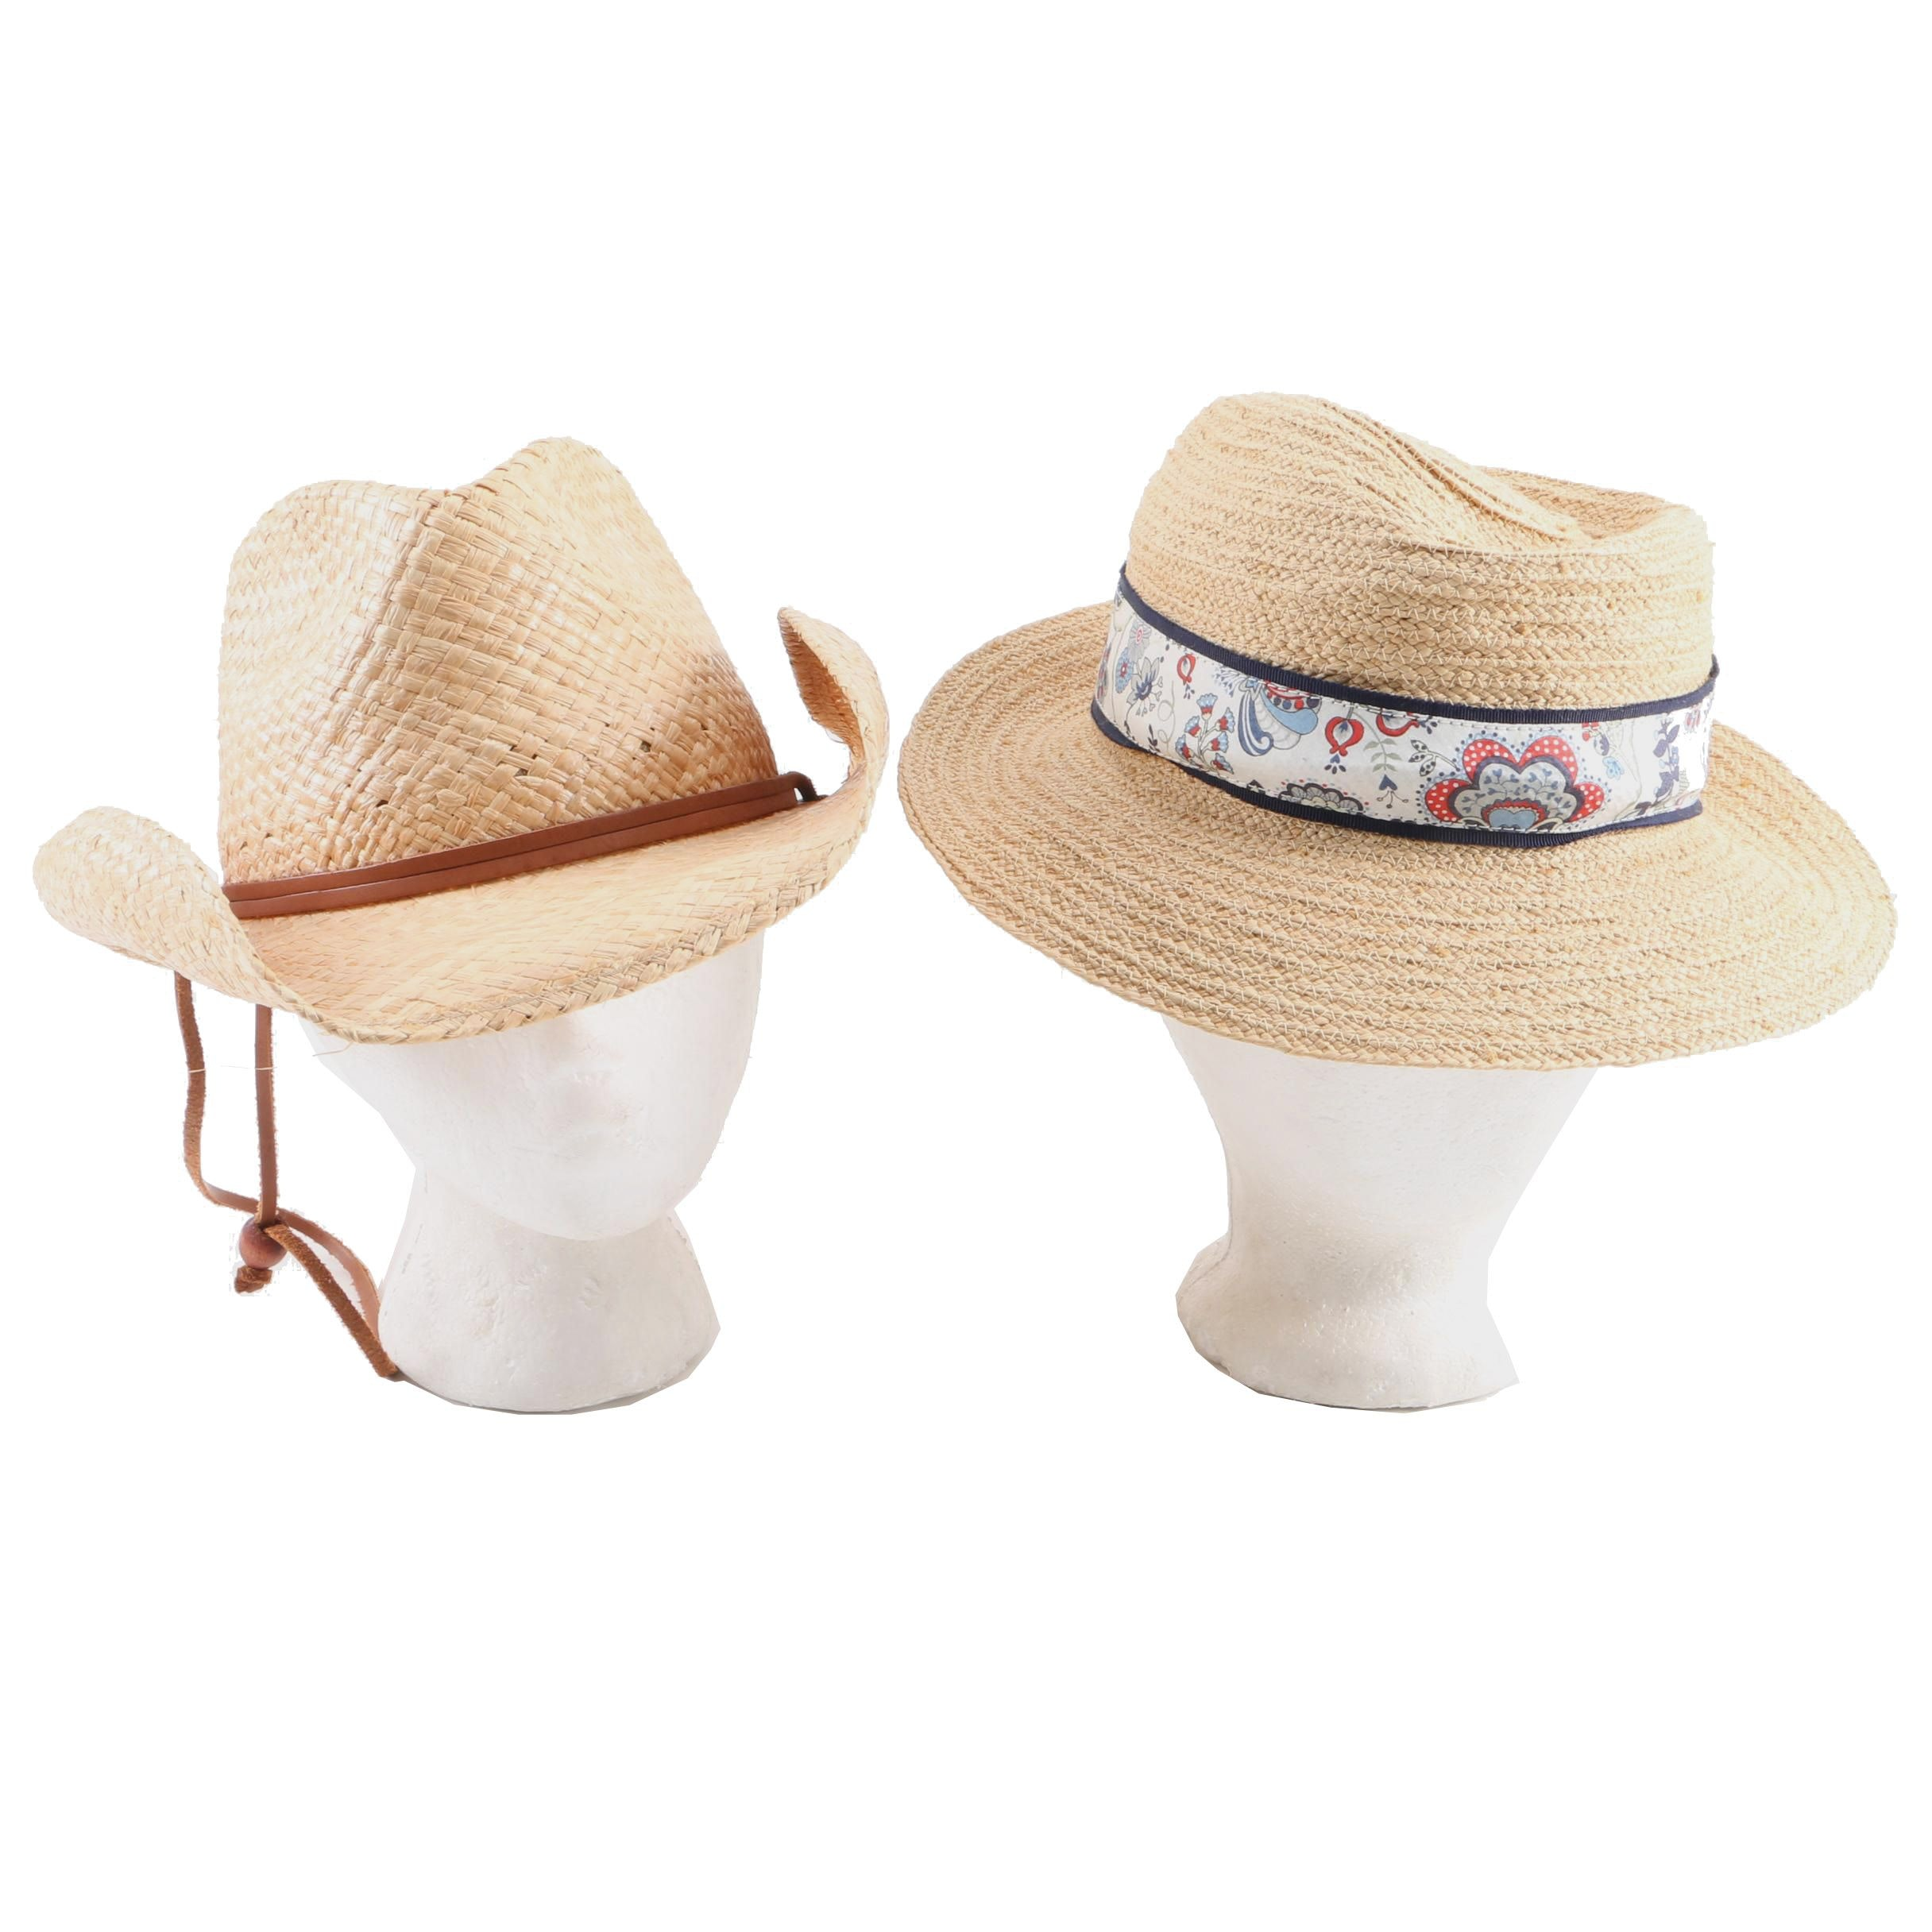 Men's Stetson and Chance Woven Straw Hats